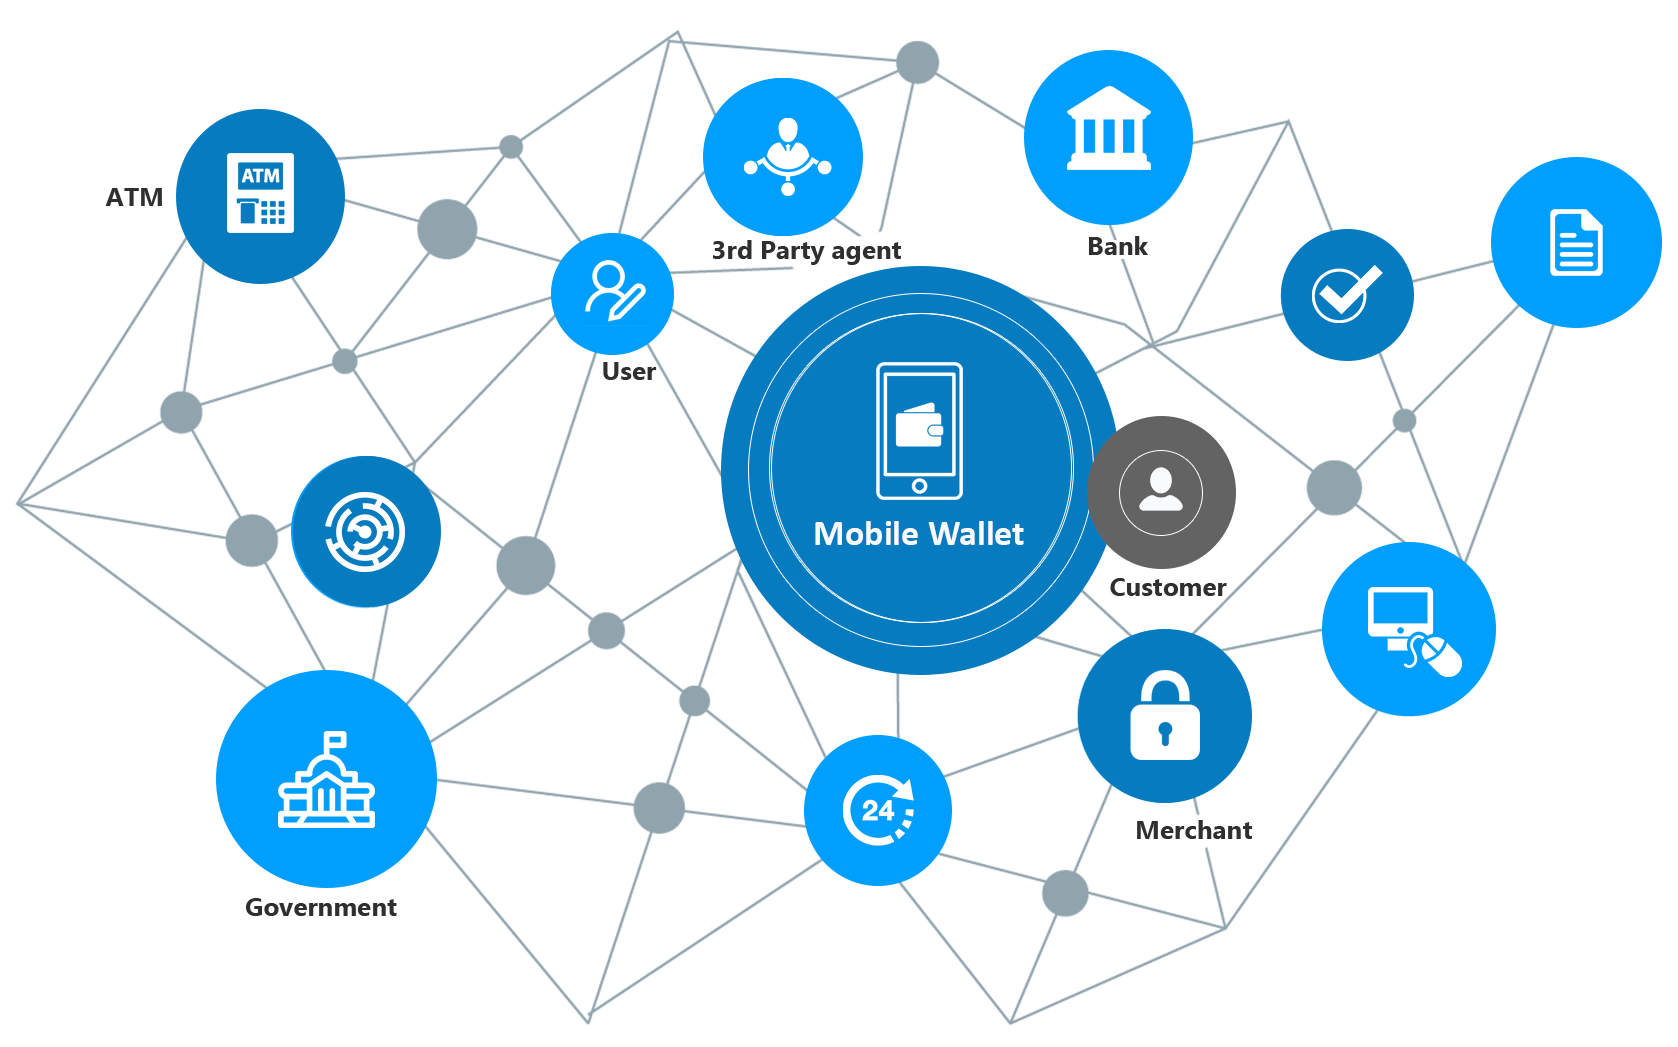 HOW electronic wallet application works?